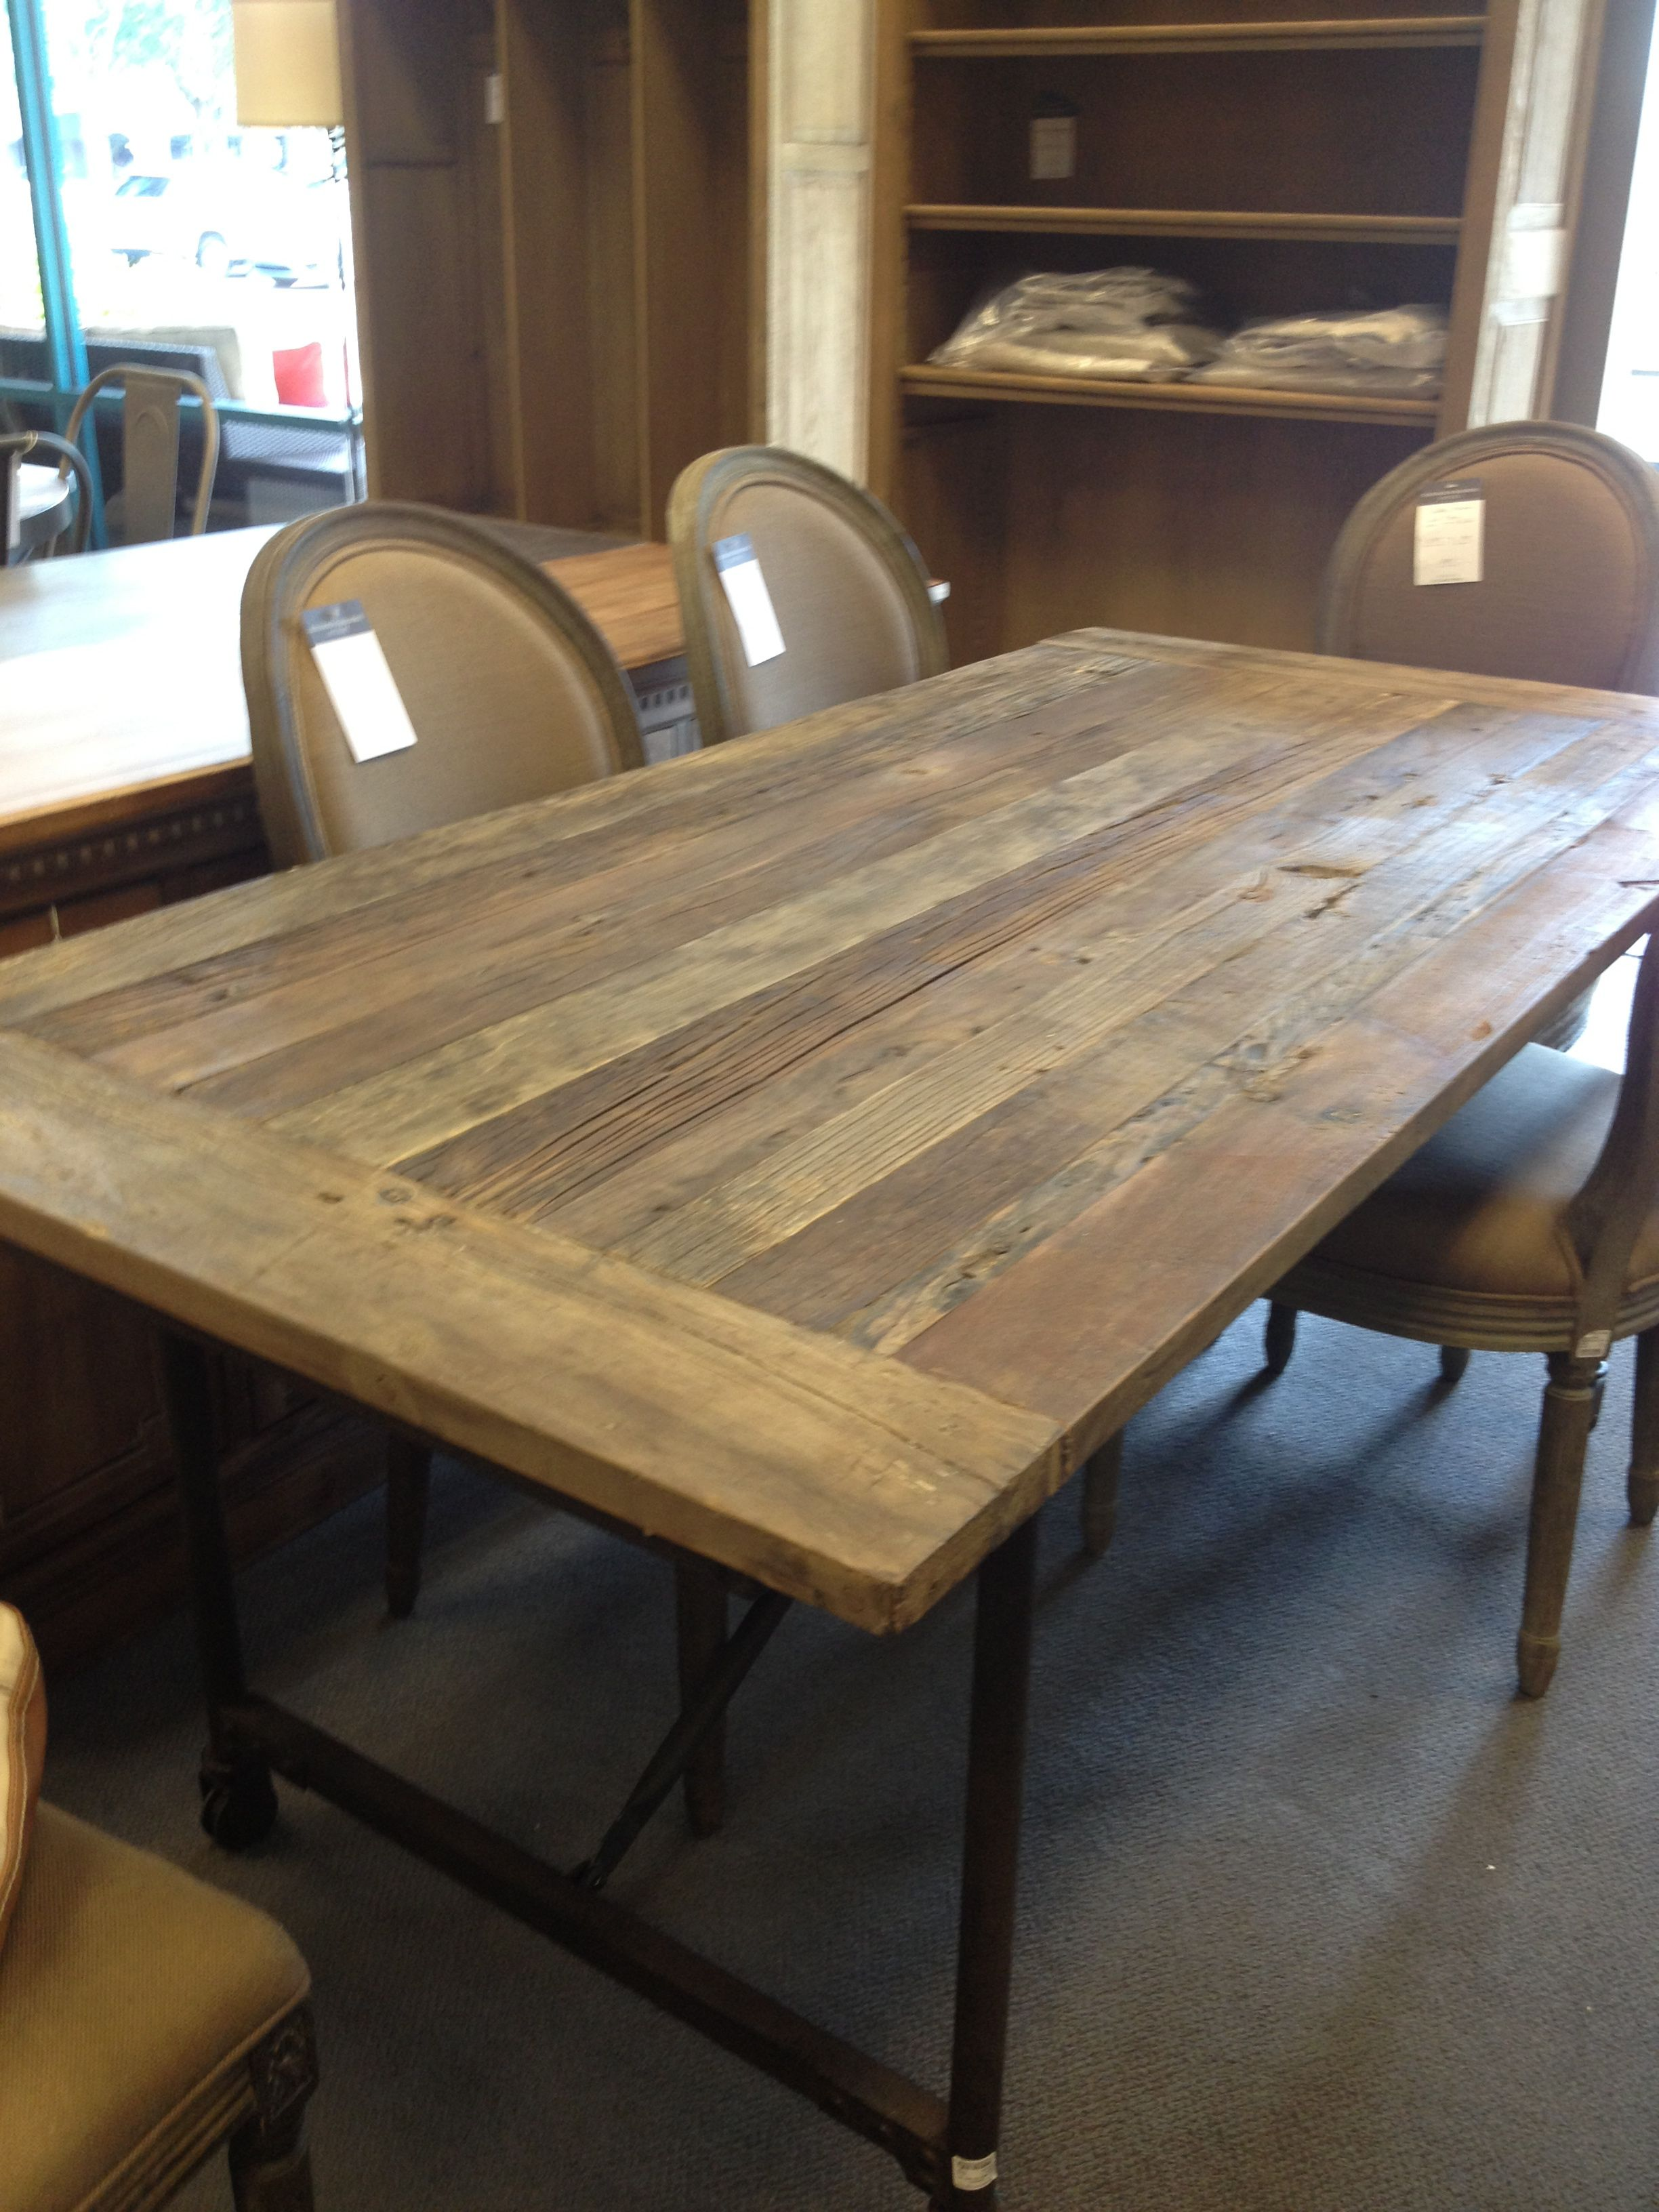 "Table top 72"" Flatiron table from Restoration Hardware"